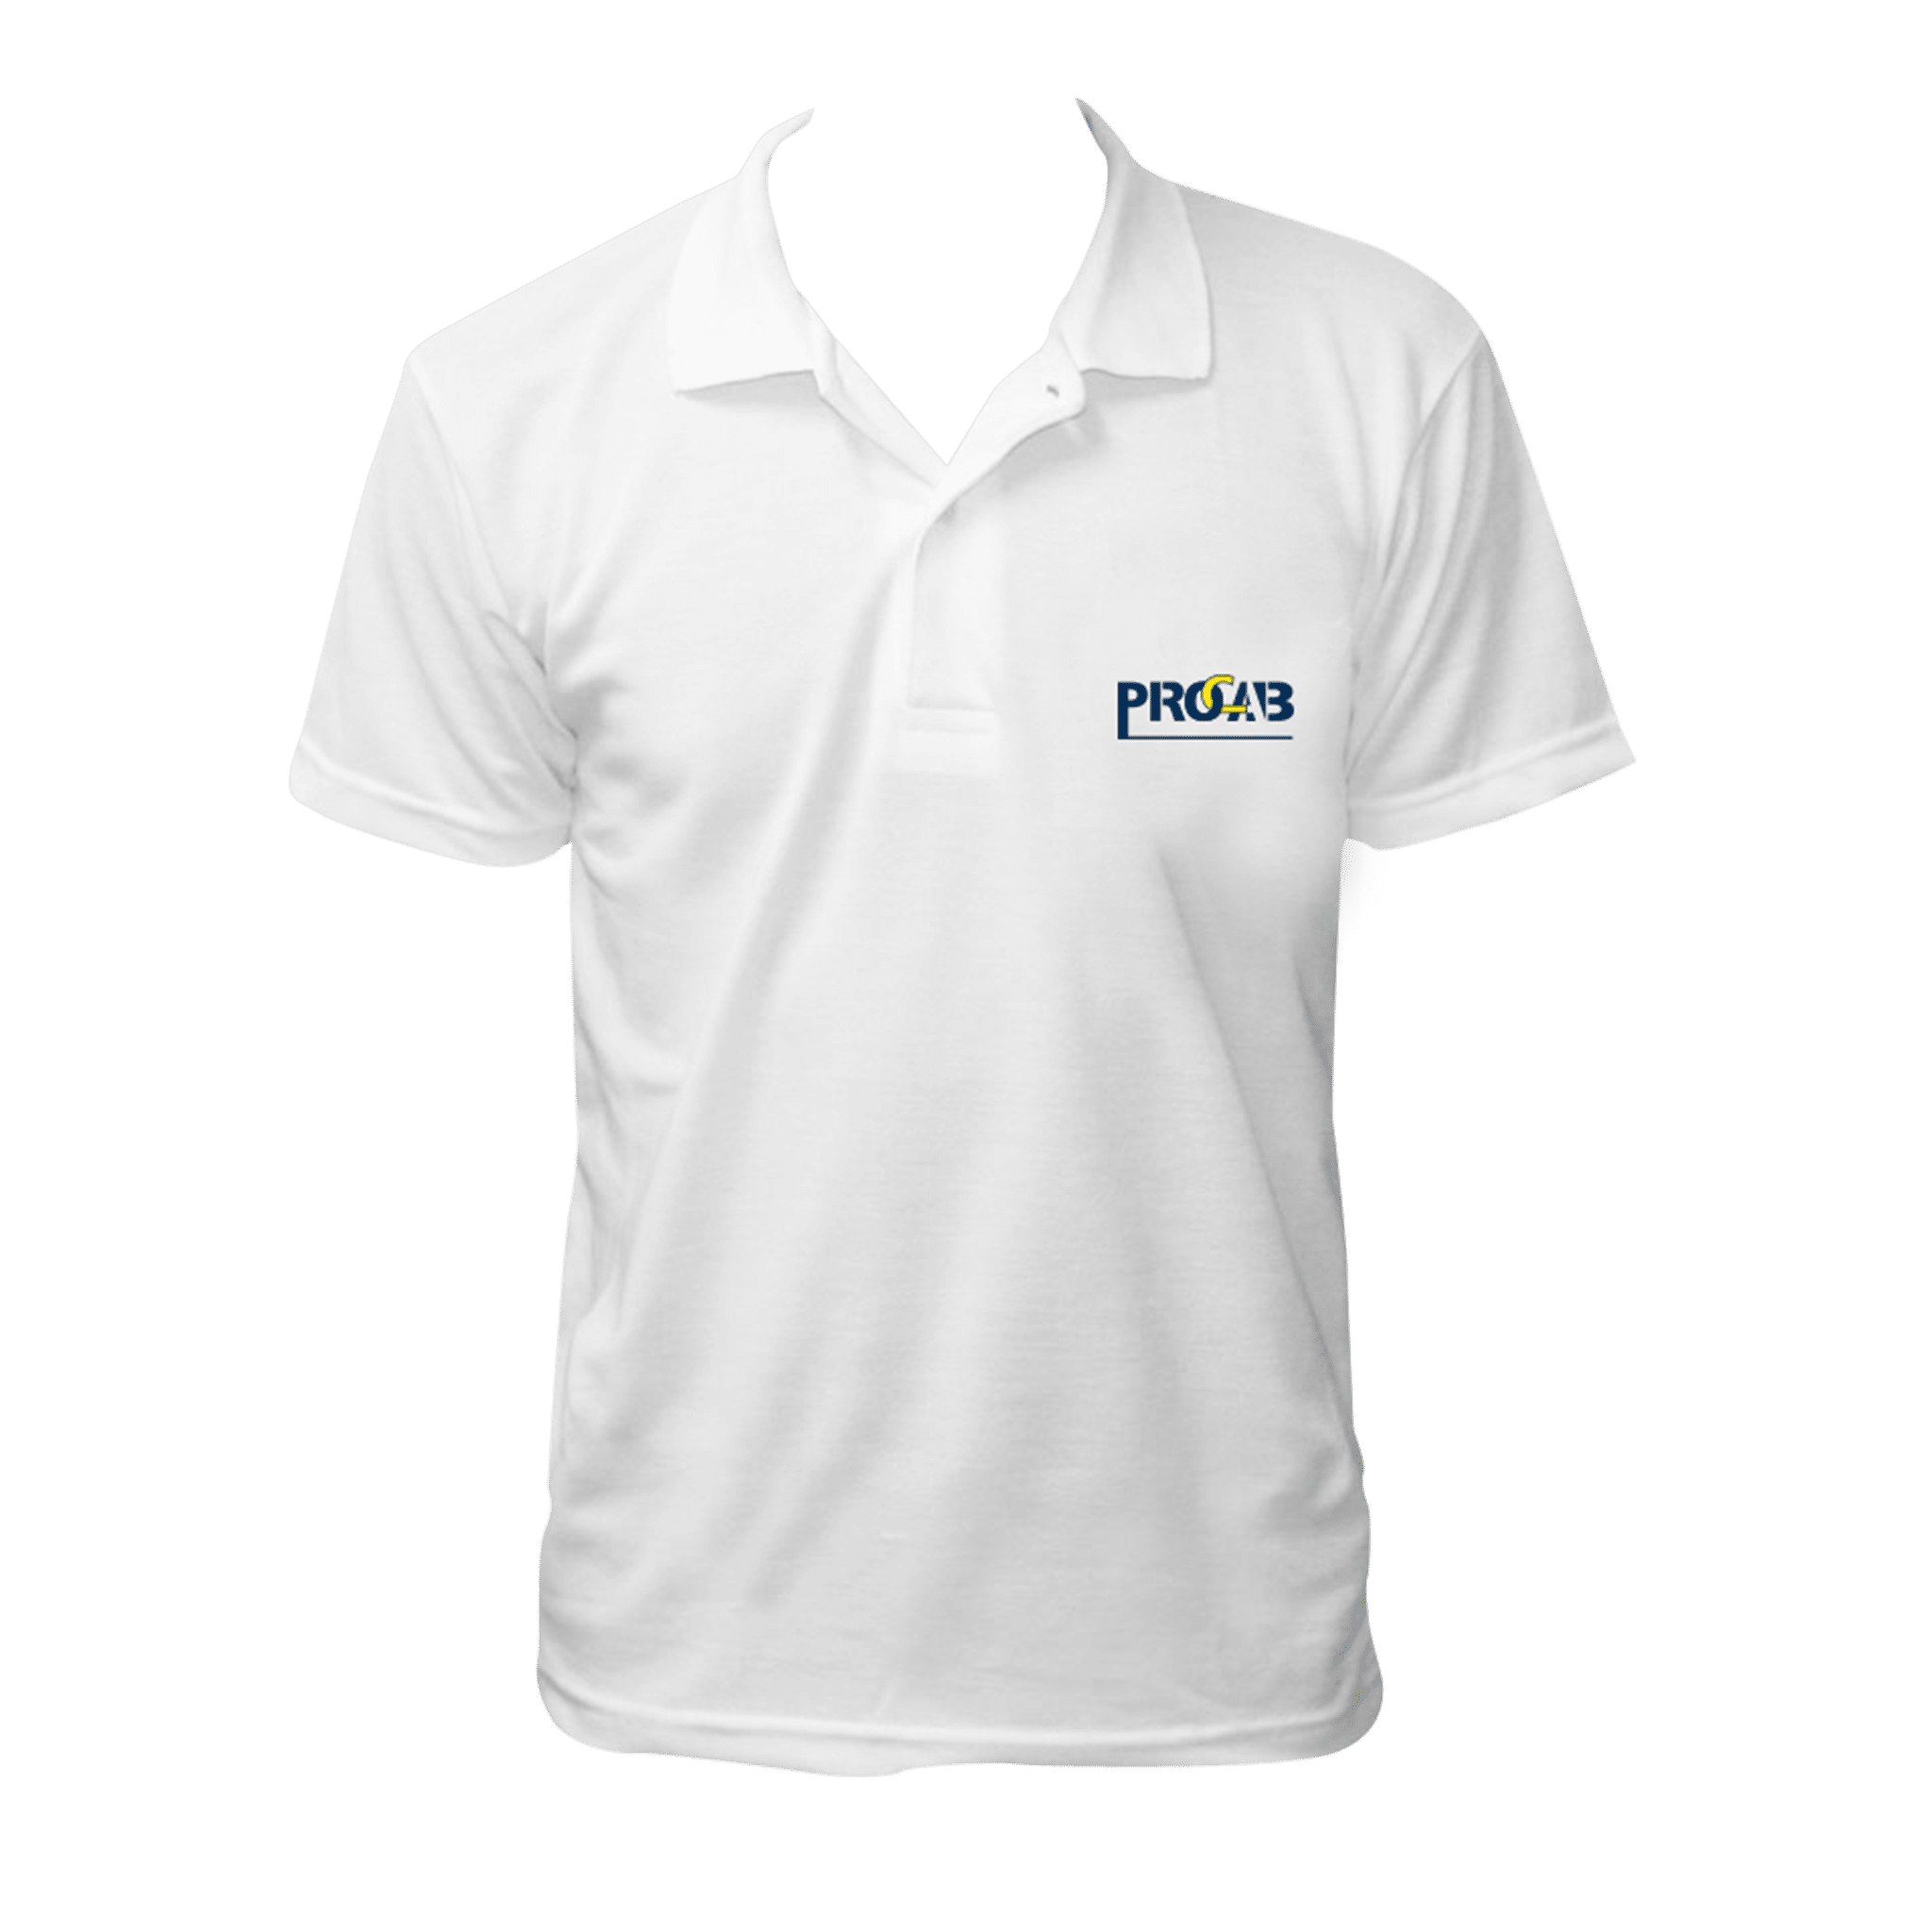 PROMO607X - PROCAB promotion polo-shirt